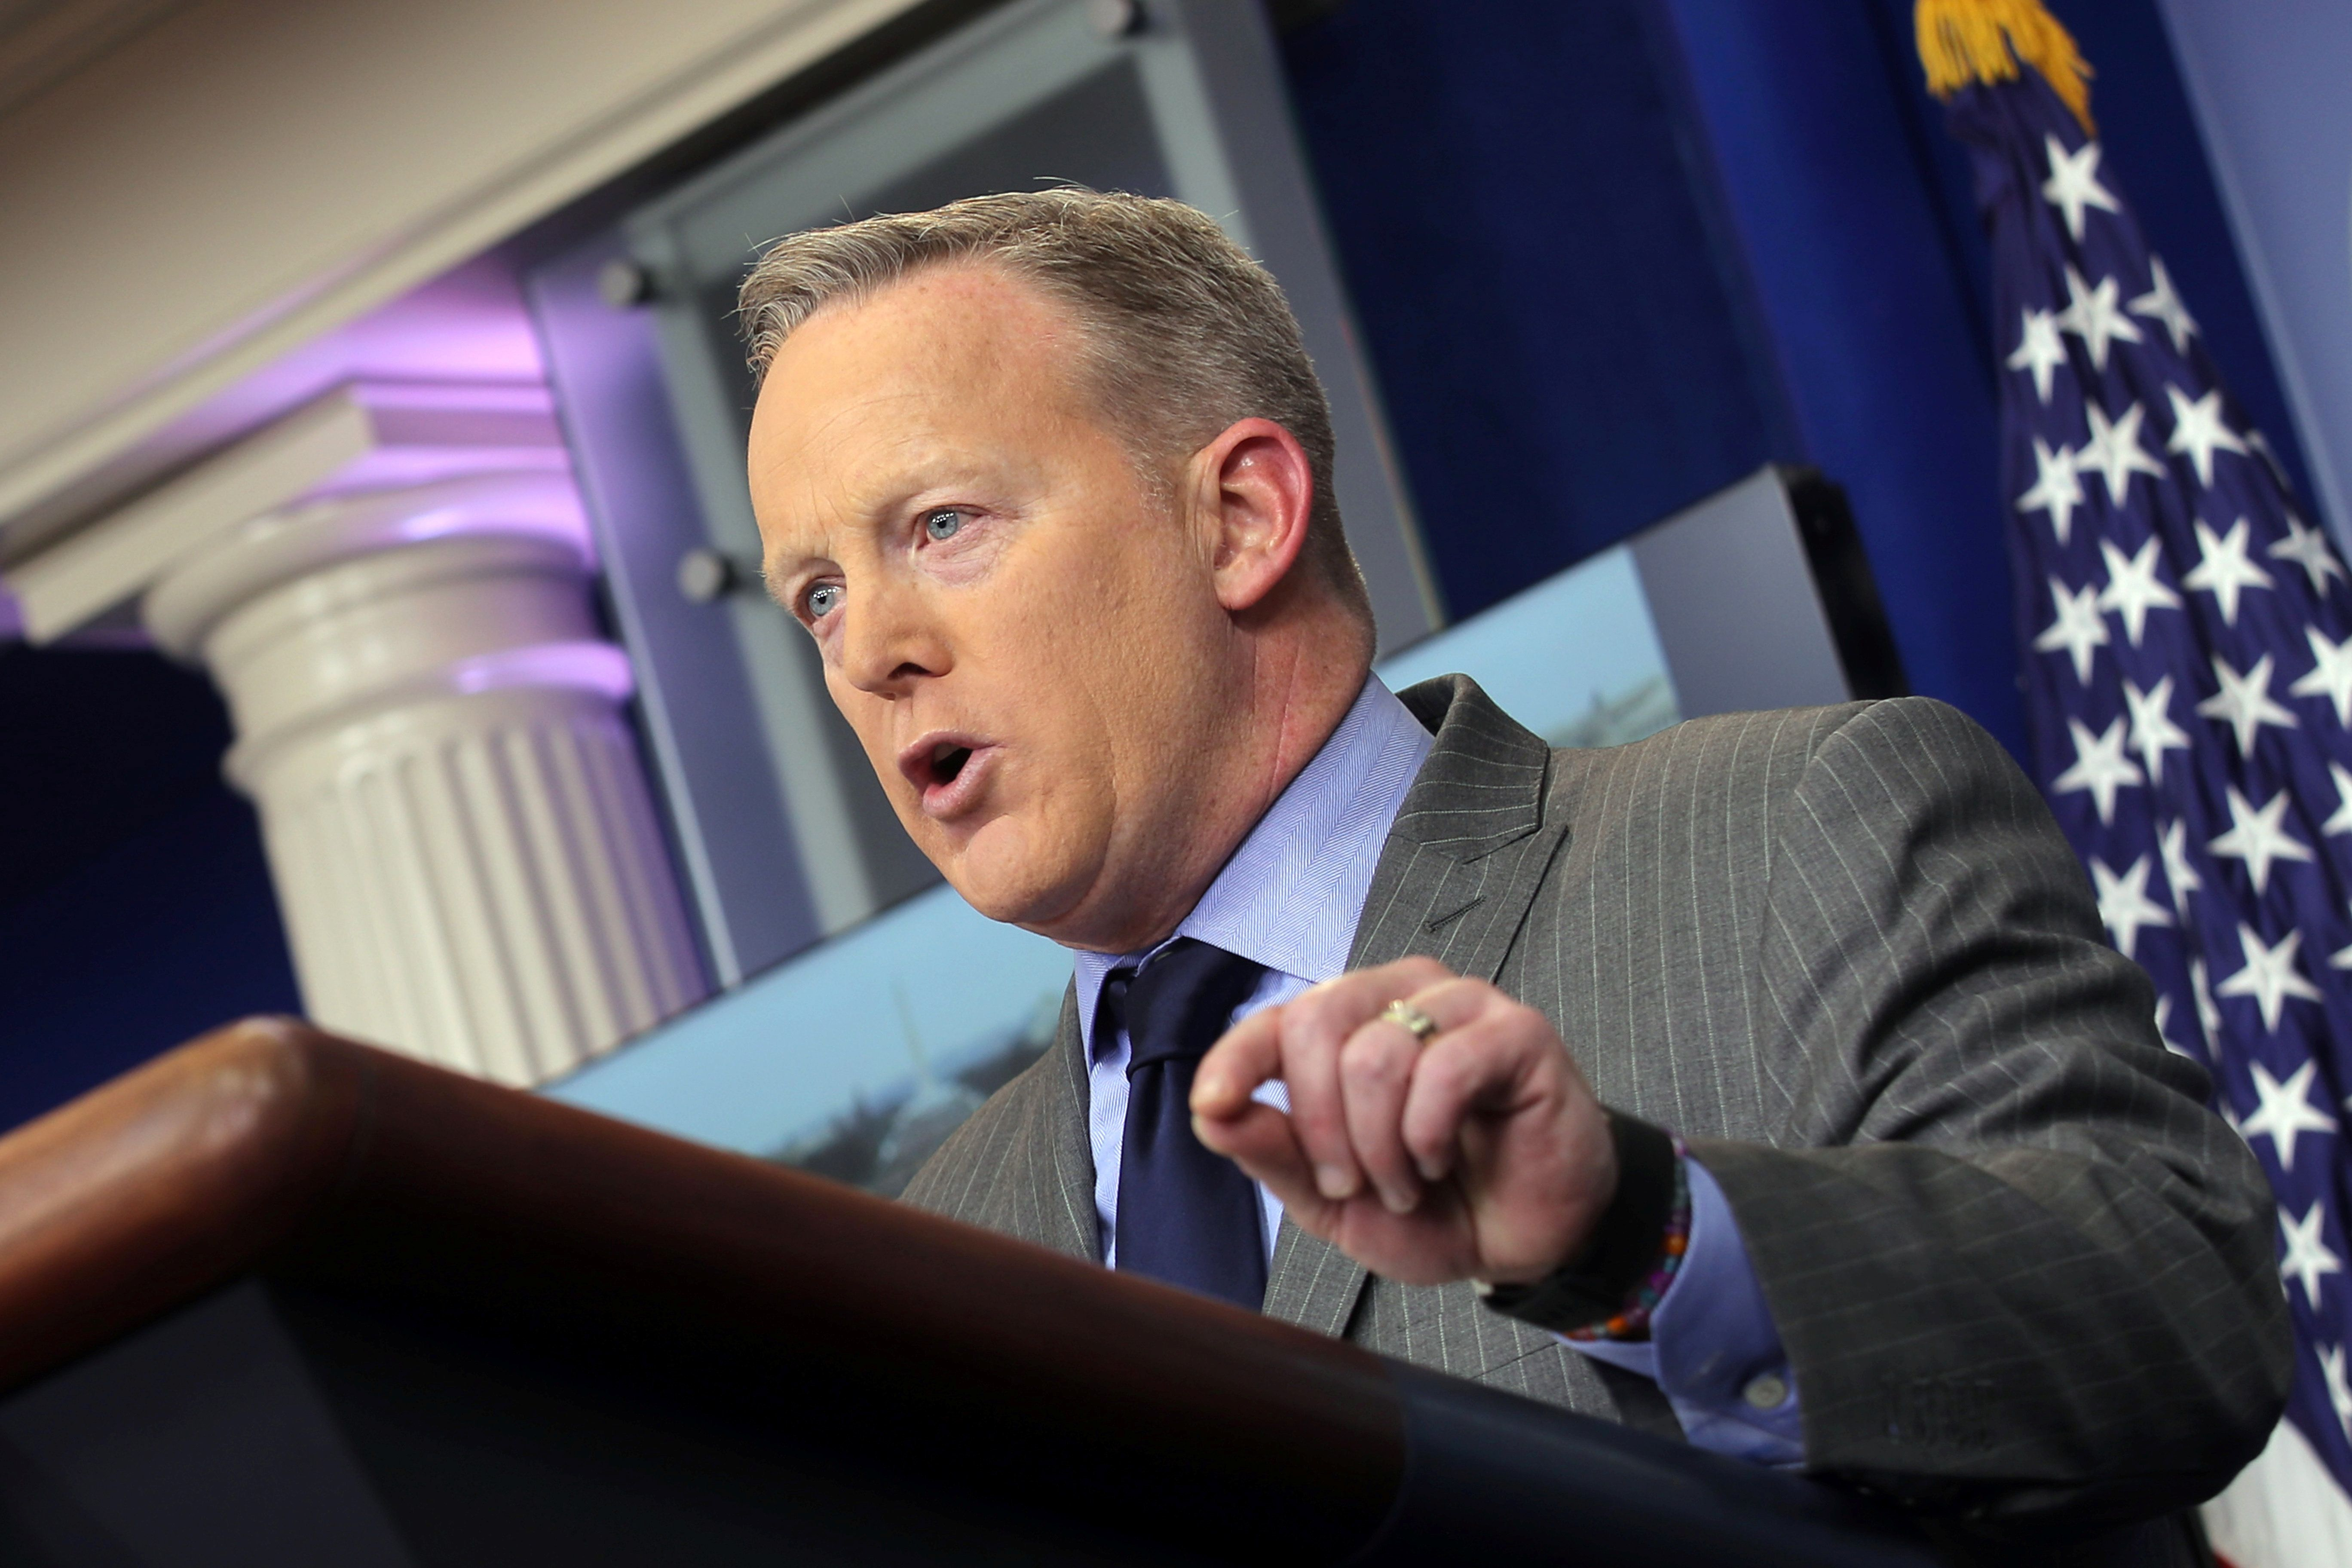 Spicer's Inauguration Whopper Makes Him Latest Hot